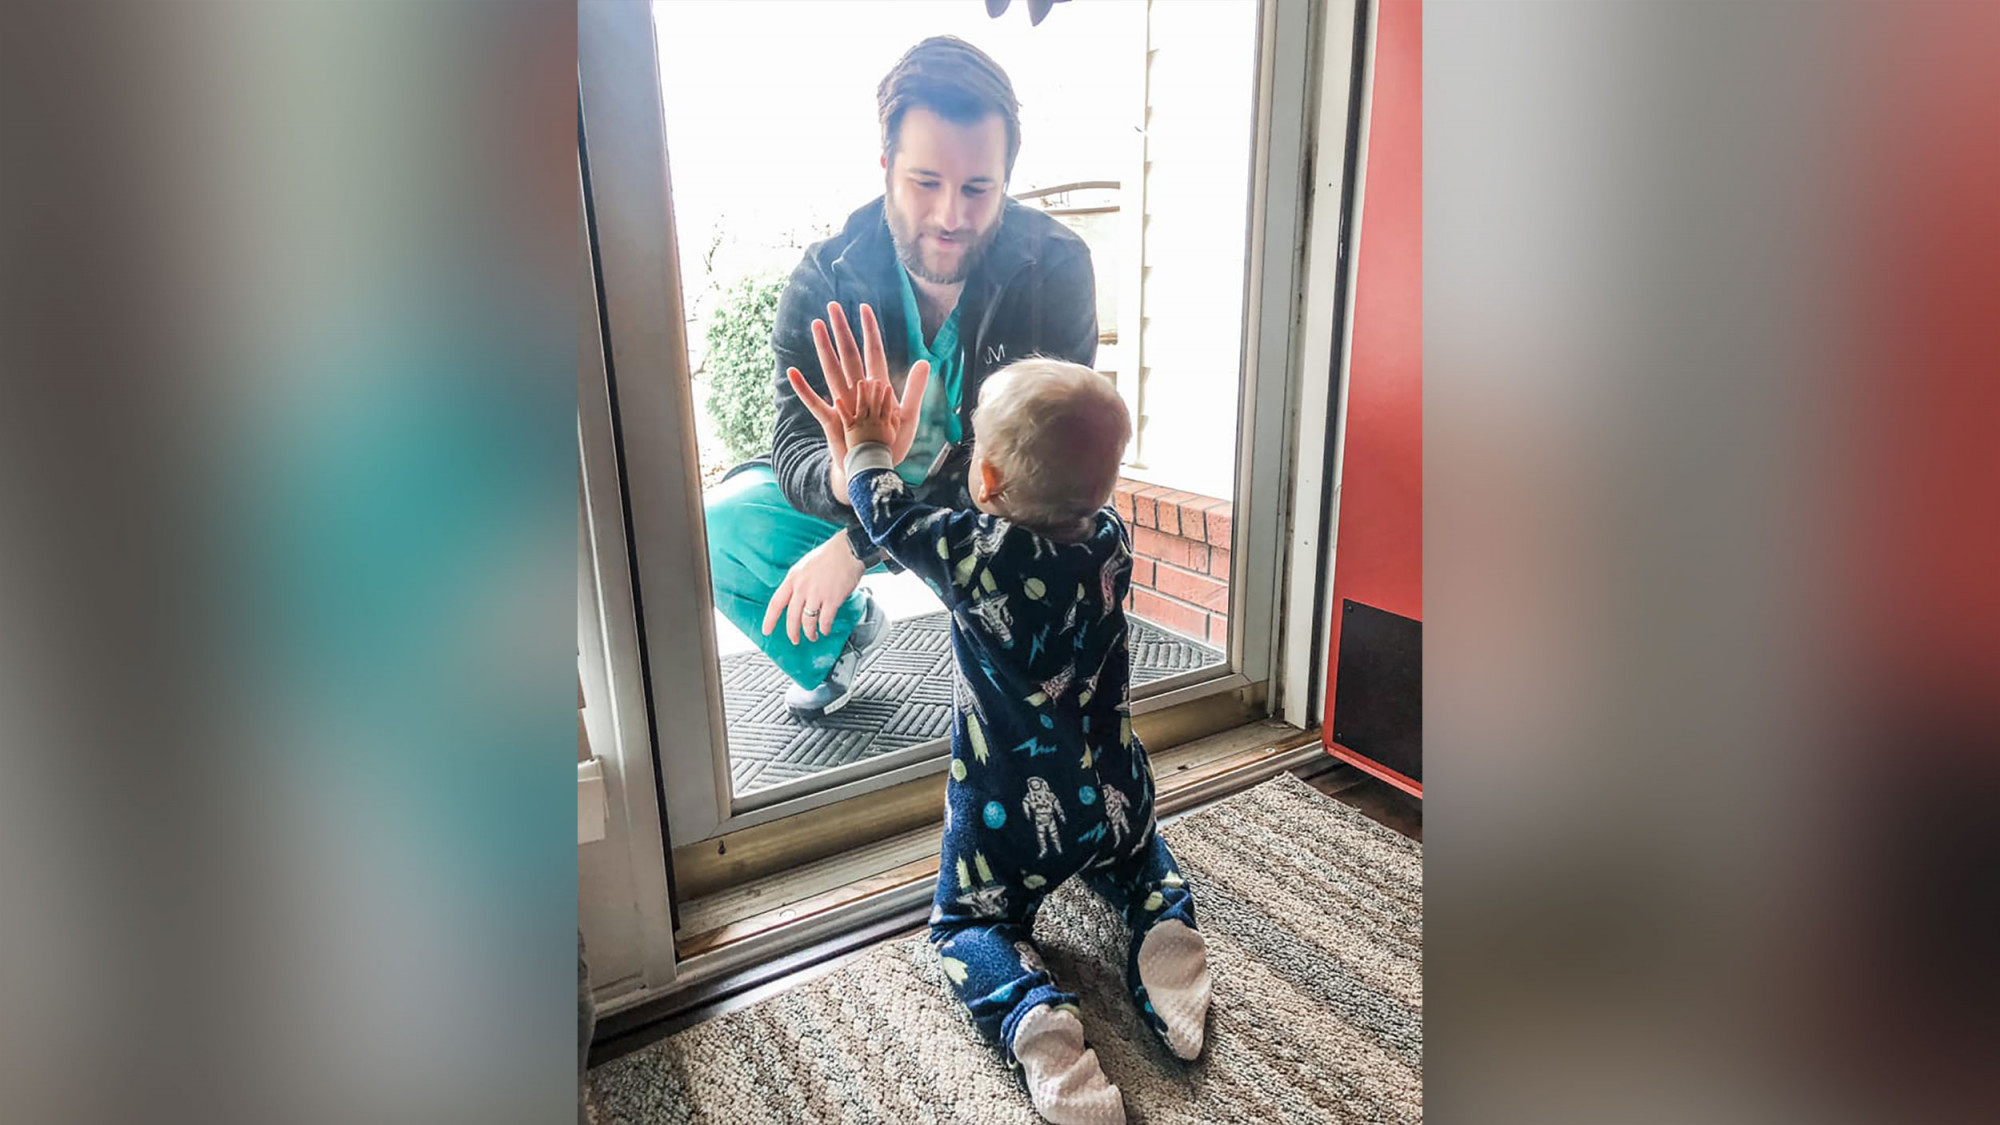 Dr. Jared Burks sees his 1-year-old son